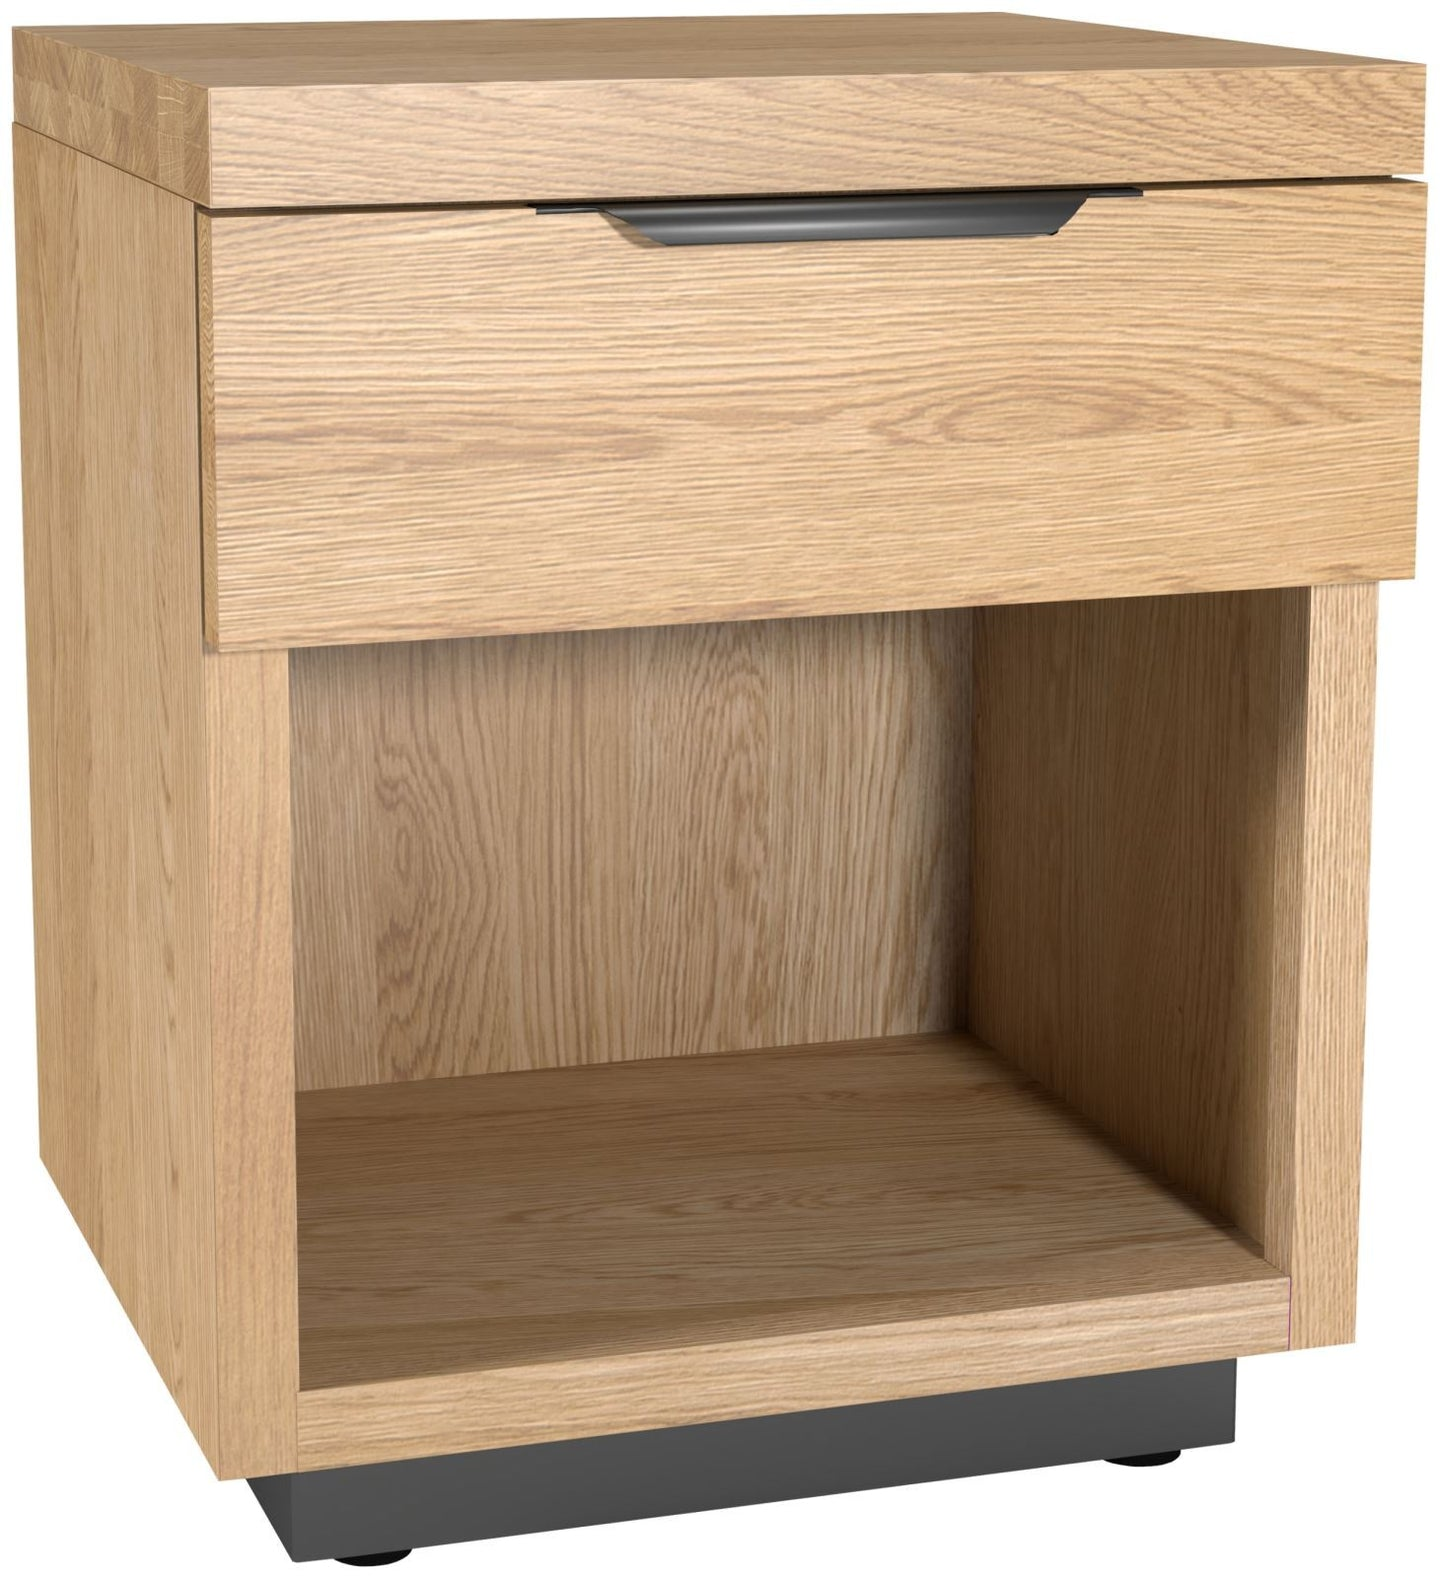 Union 1 Drawer Bedside